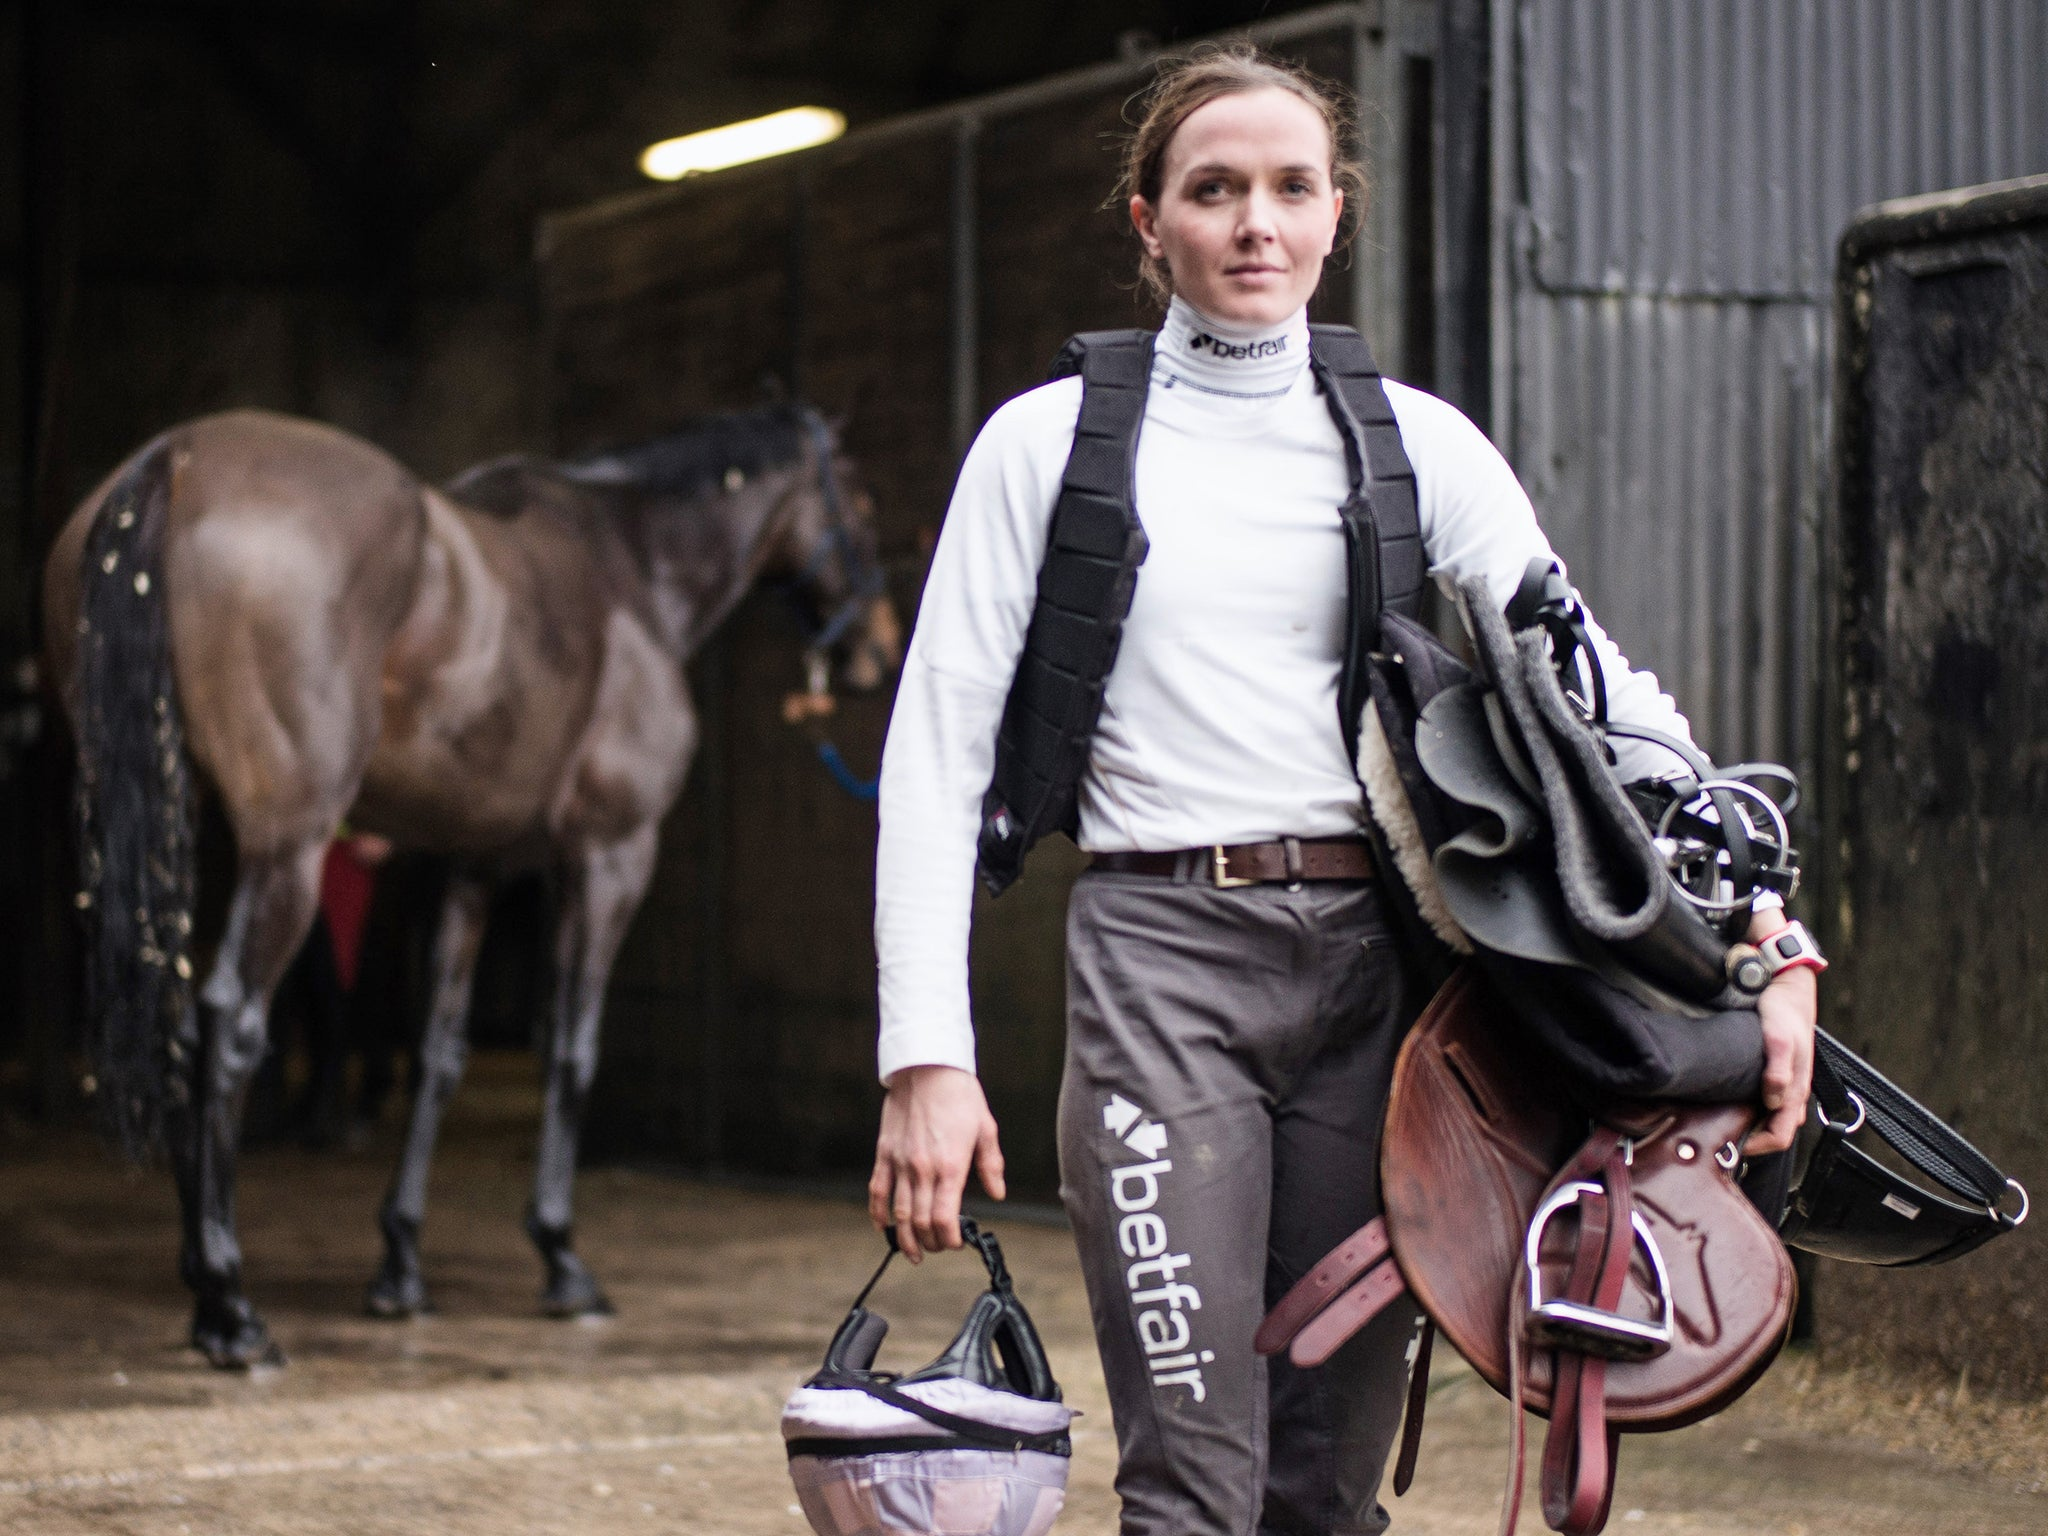 Victoria Pendleton Profile Olympian Who Made The Transition From Elite Cycling To Horse Riding The Independent The Independent